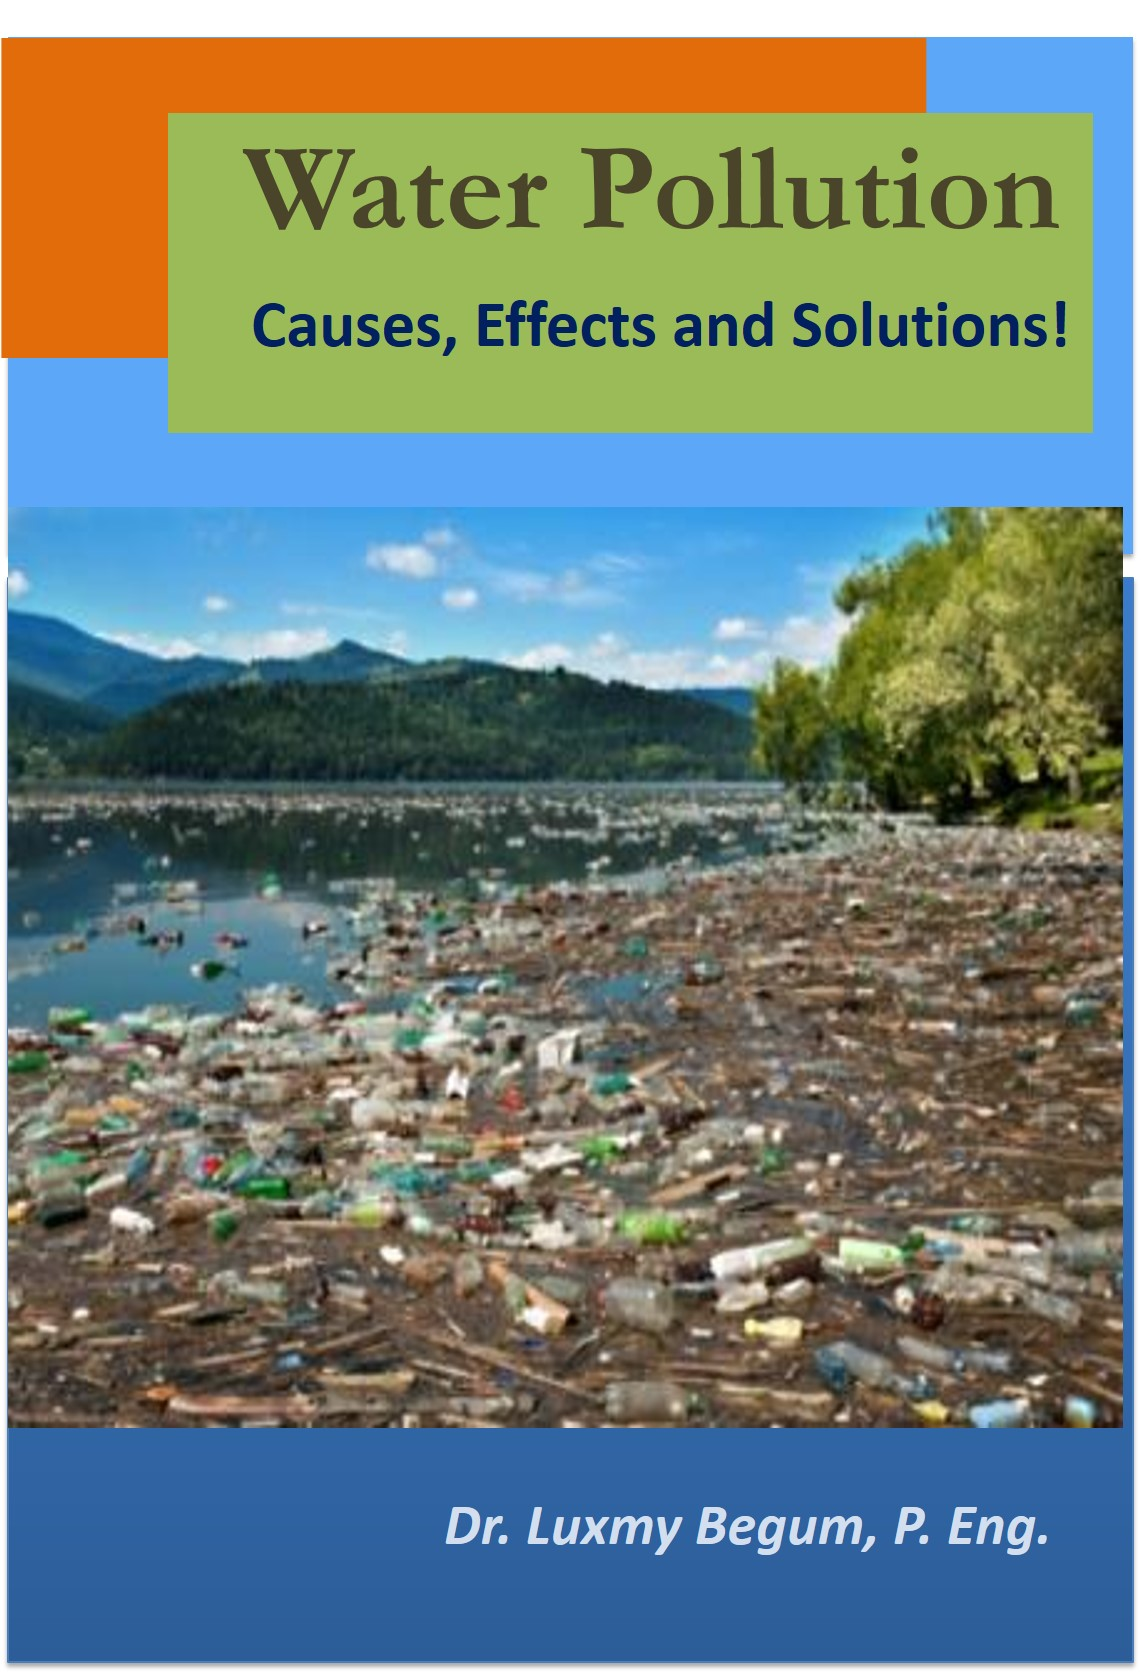 What is Environmental Pollution?